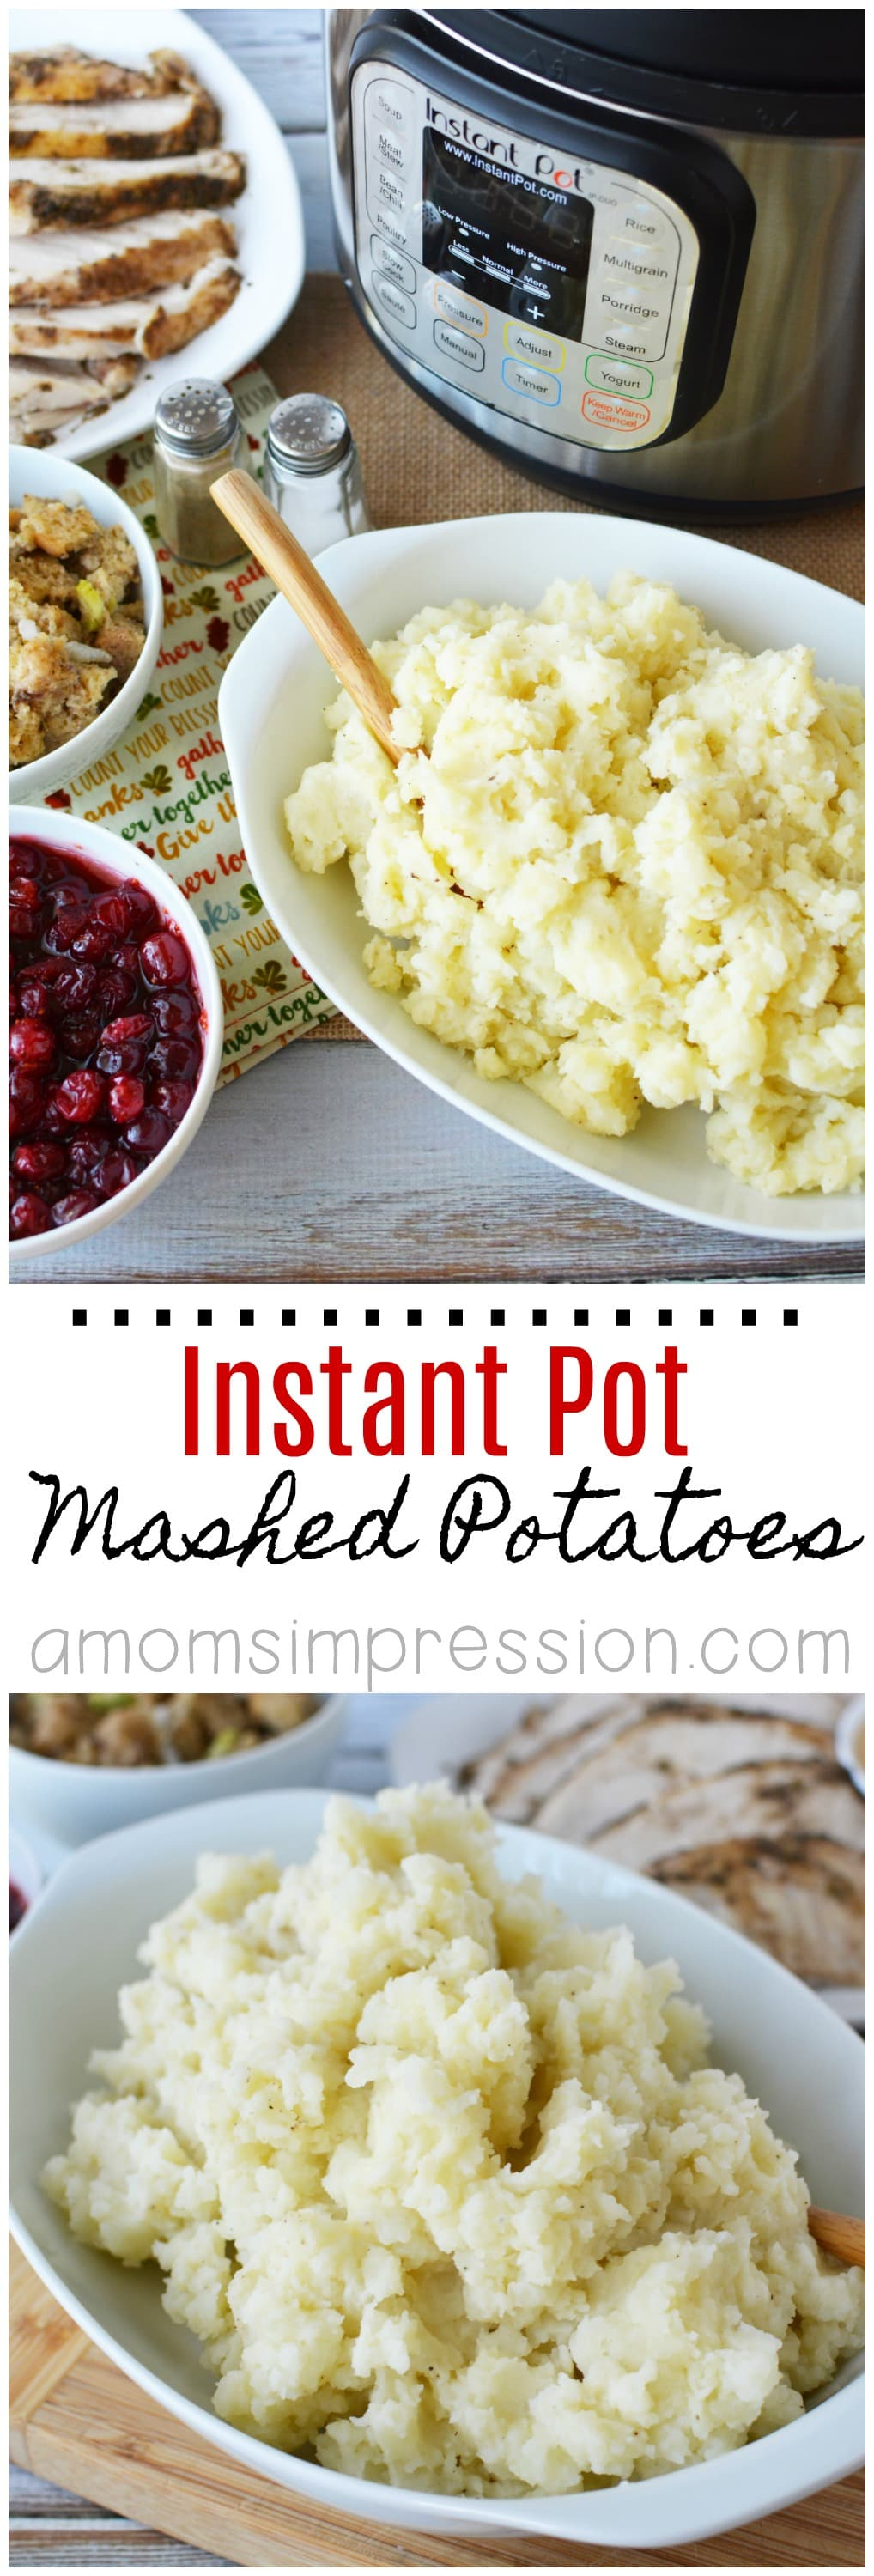 Instant Pot Mashed Potatoes made easy in an electric pressure cooker. Make the most delicious mashed potatoes in 15 minutes with this simple recipe. You will never make mashed potatoes the old fashioned way again.